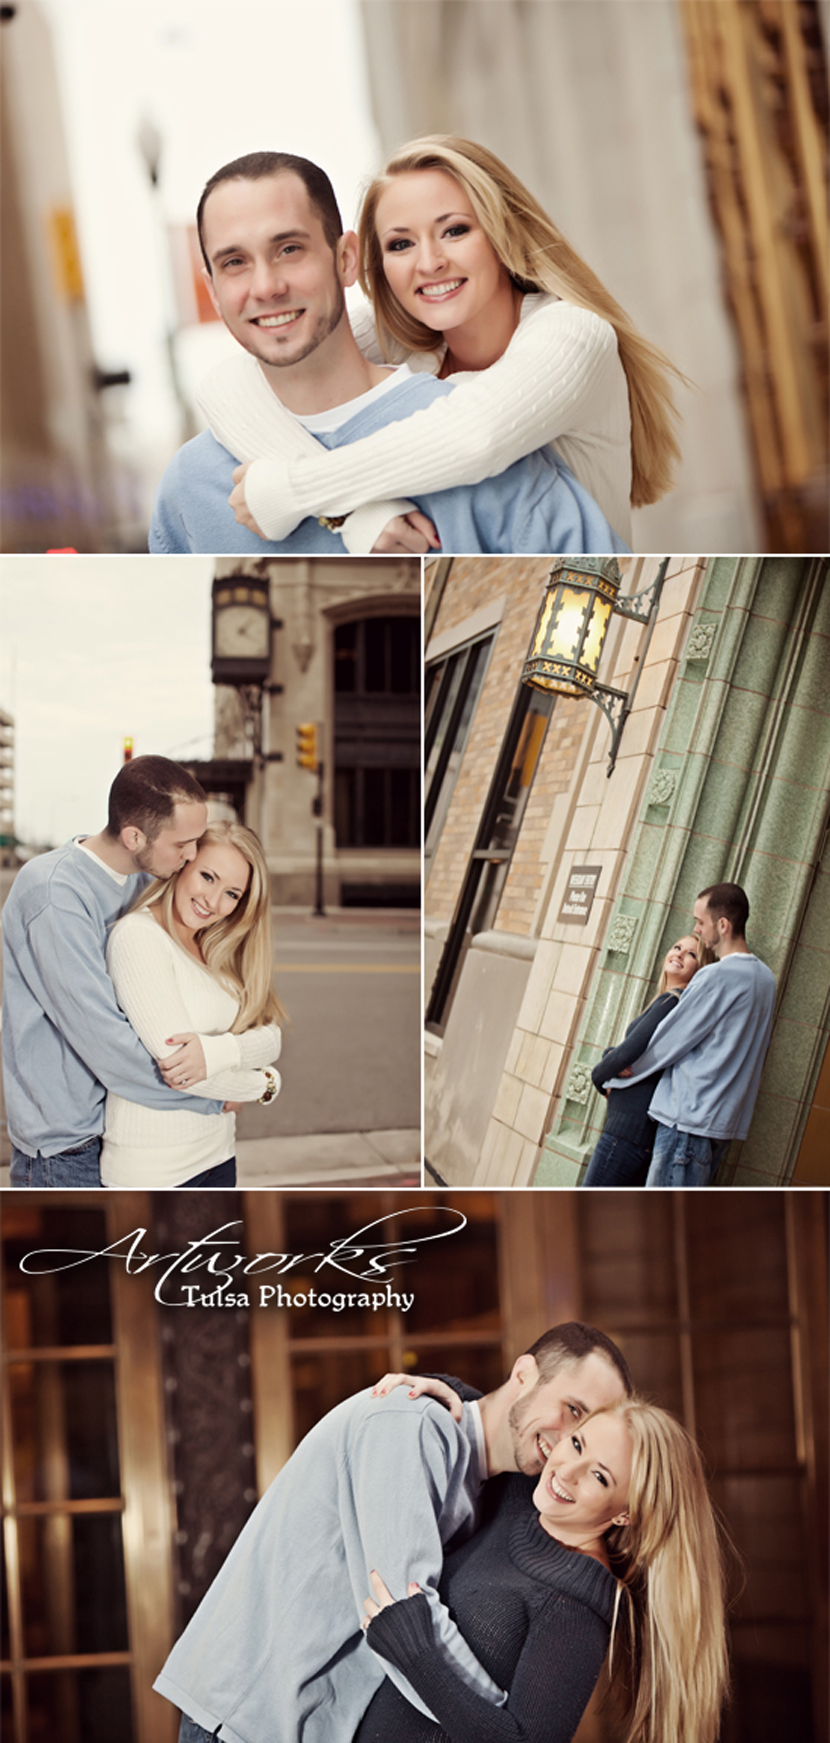 Oklahoma almost married couple Artworks Tulsa Photography